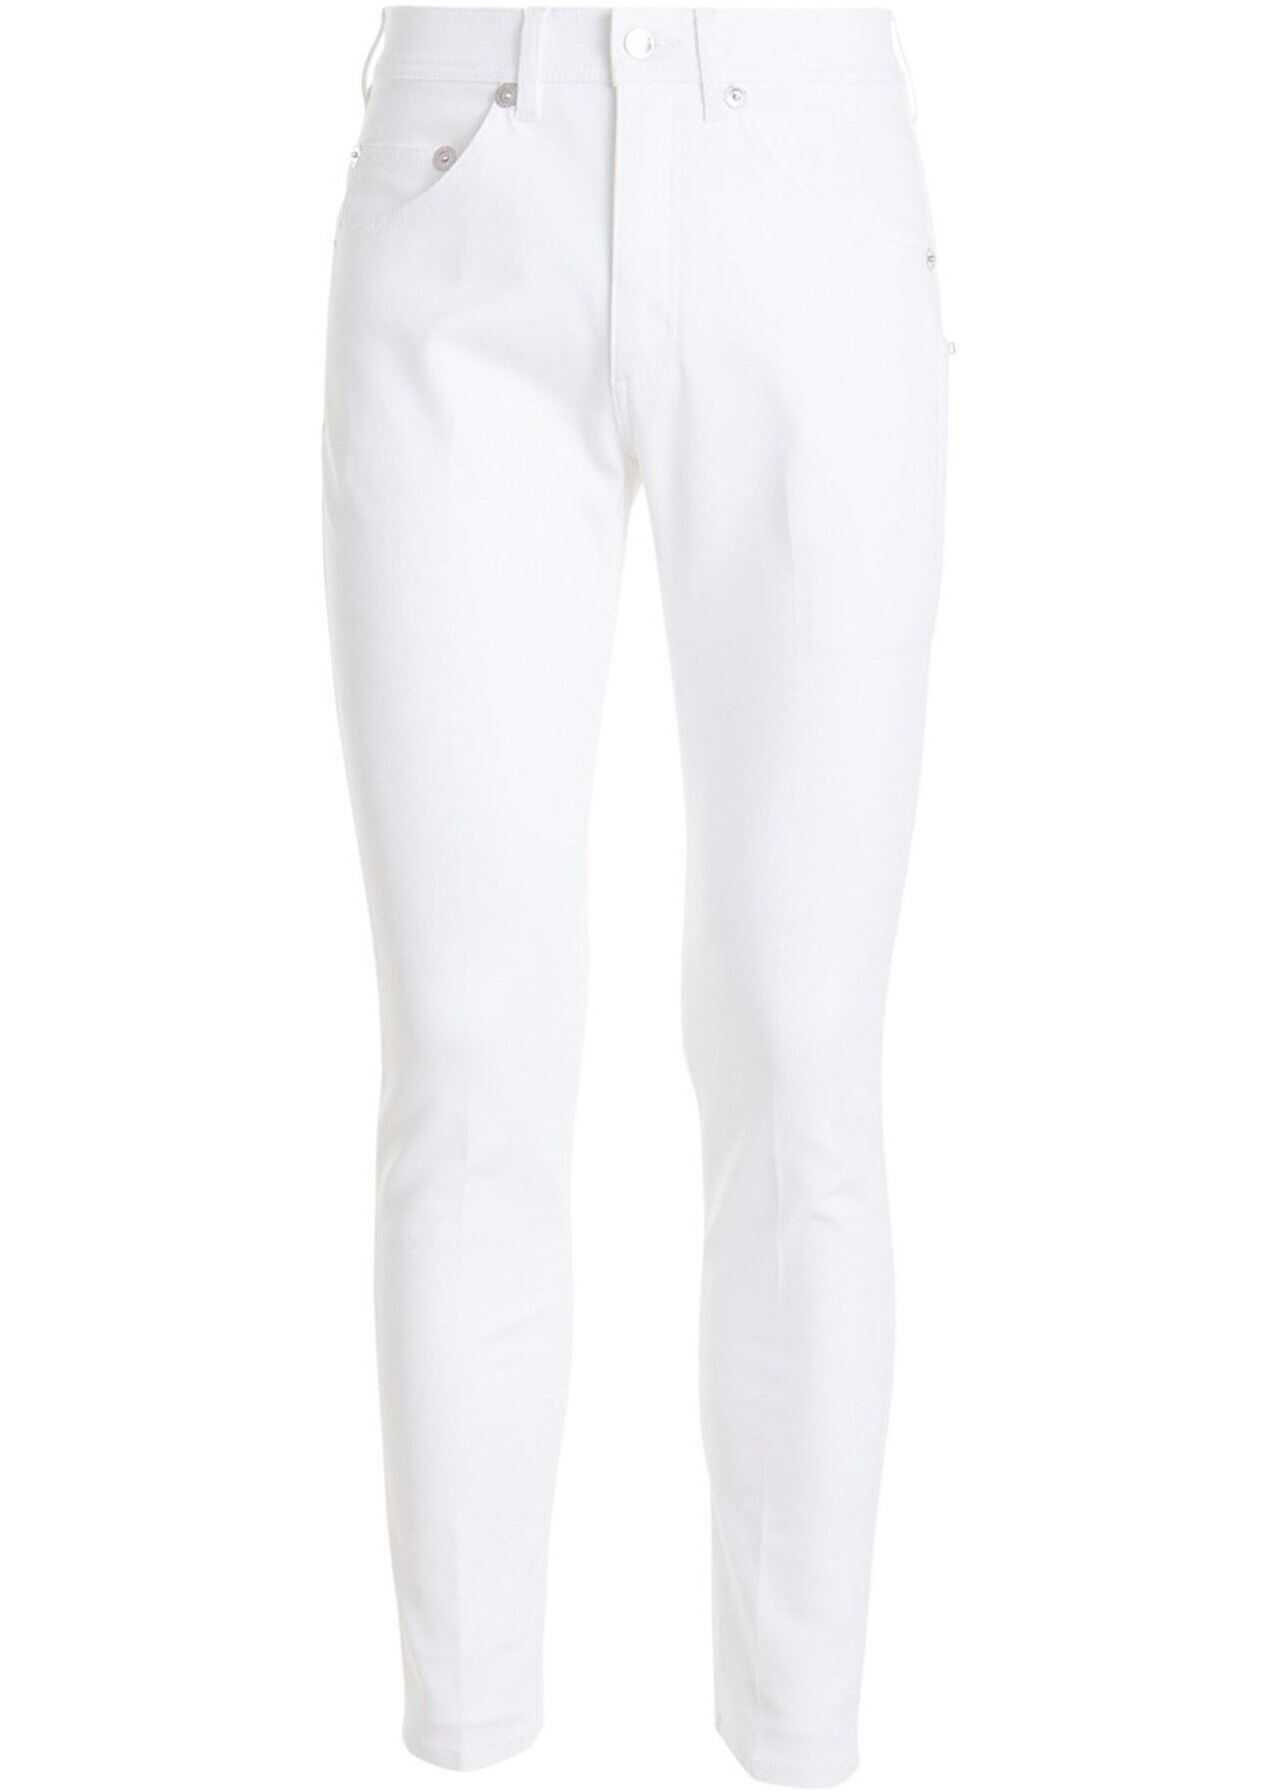 Neil Barrett Stretch Denim Skinny Jeans In White White imagine